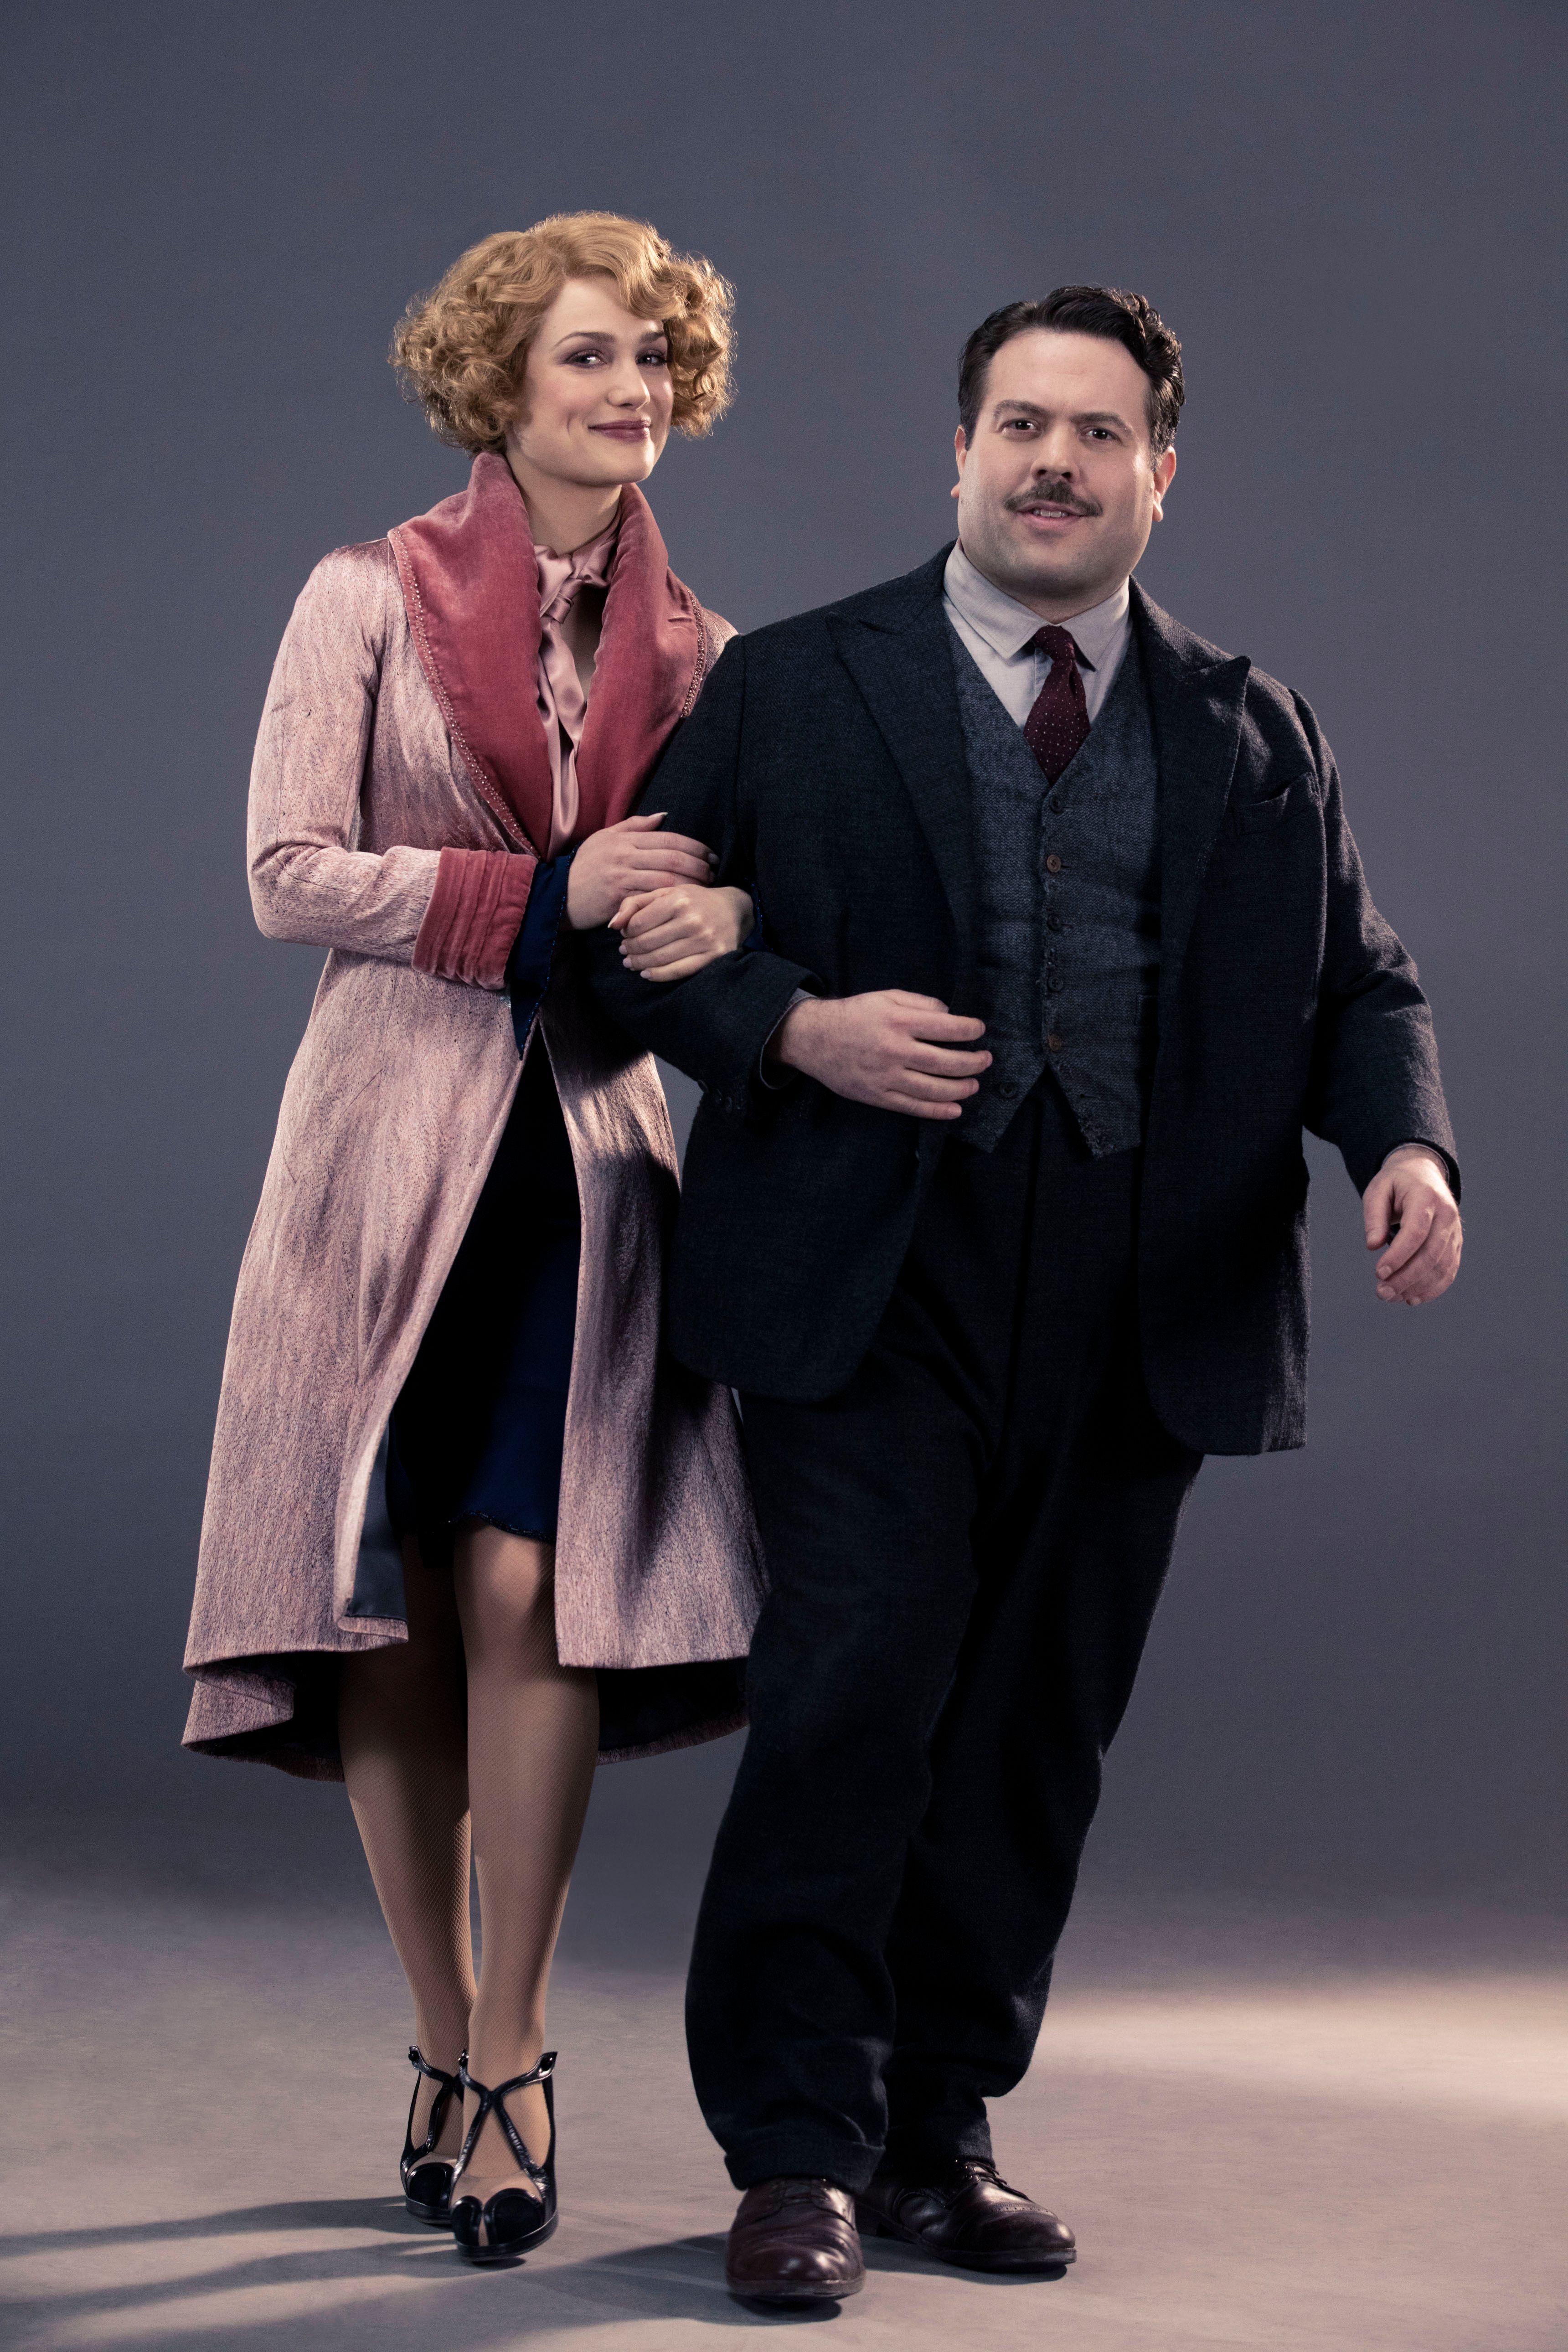 Queenie (Alison Sudol) and Jacob (Dan Fogler), promotional photo for 'Fantastic Beasts and Where to Find Them', 2016